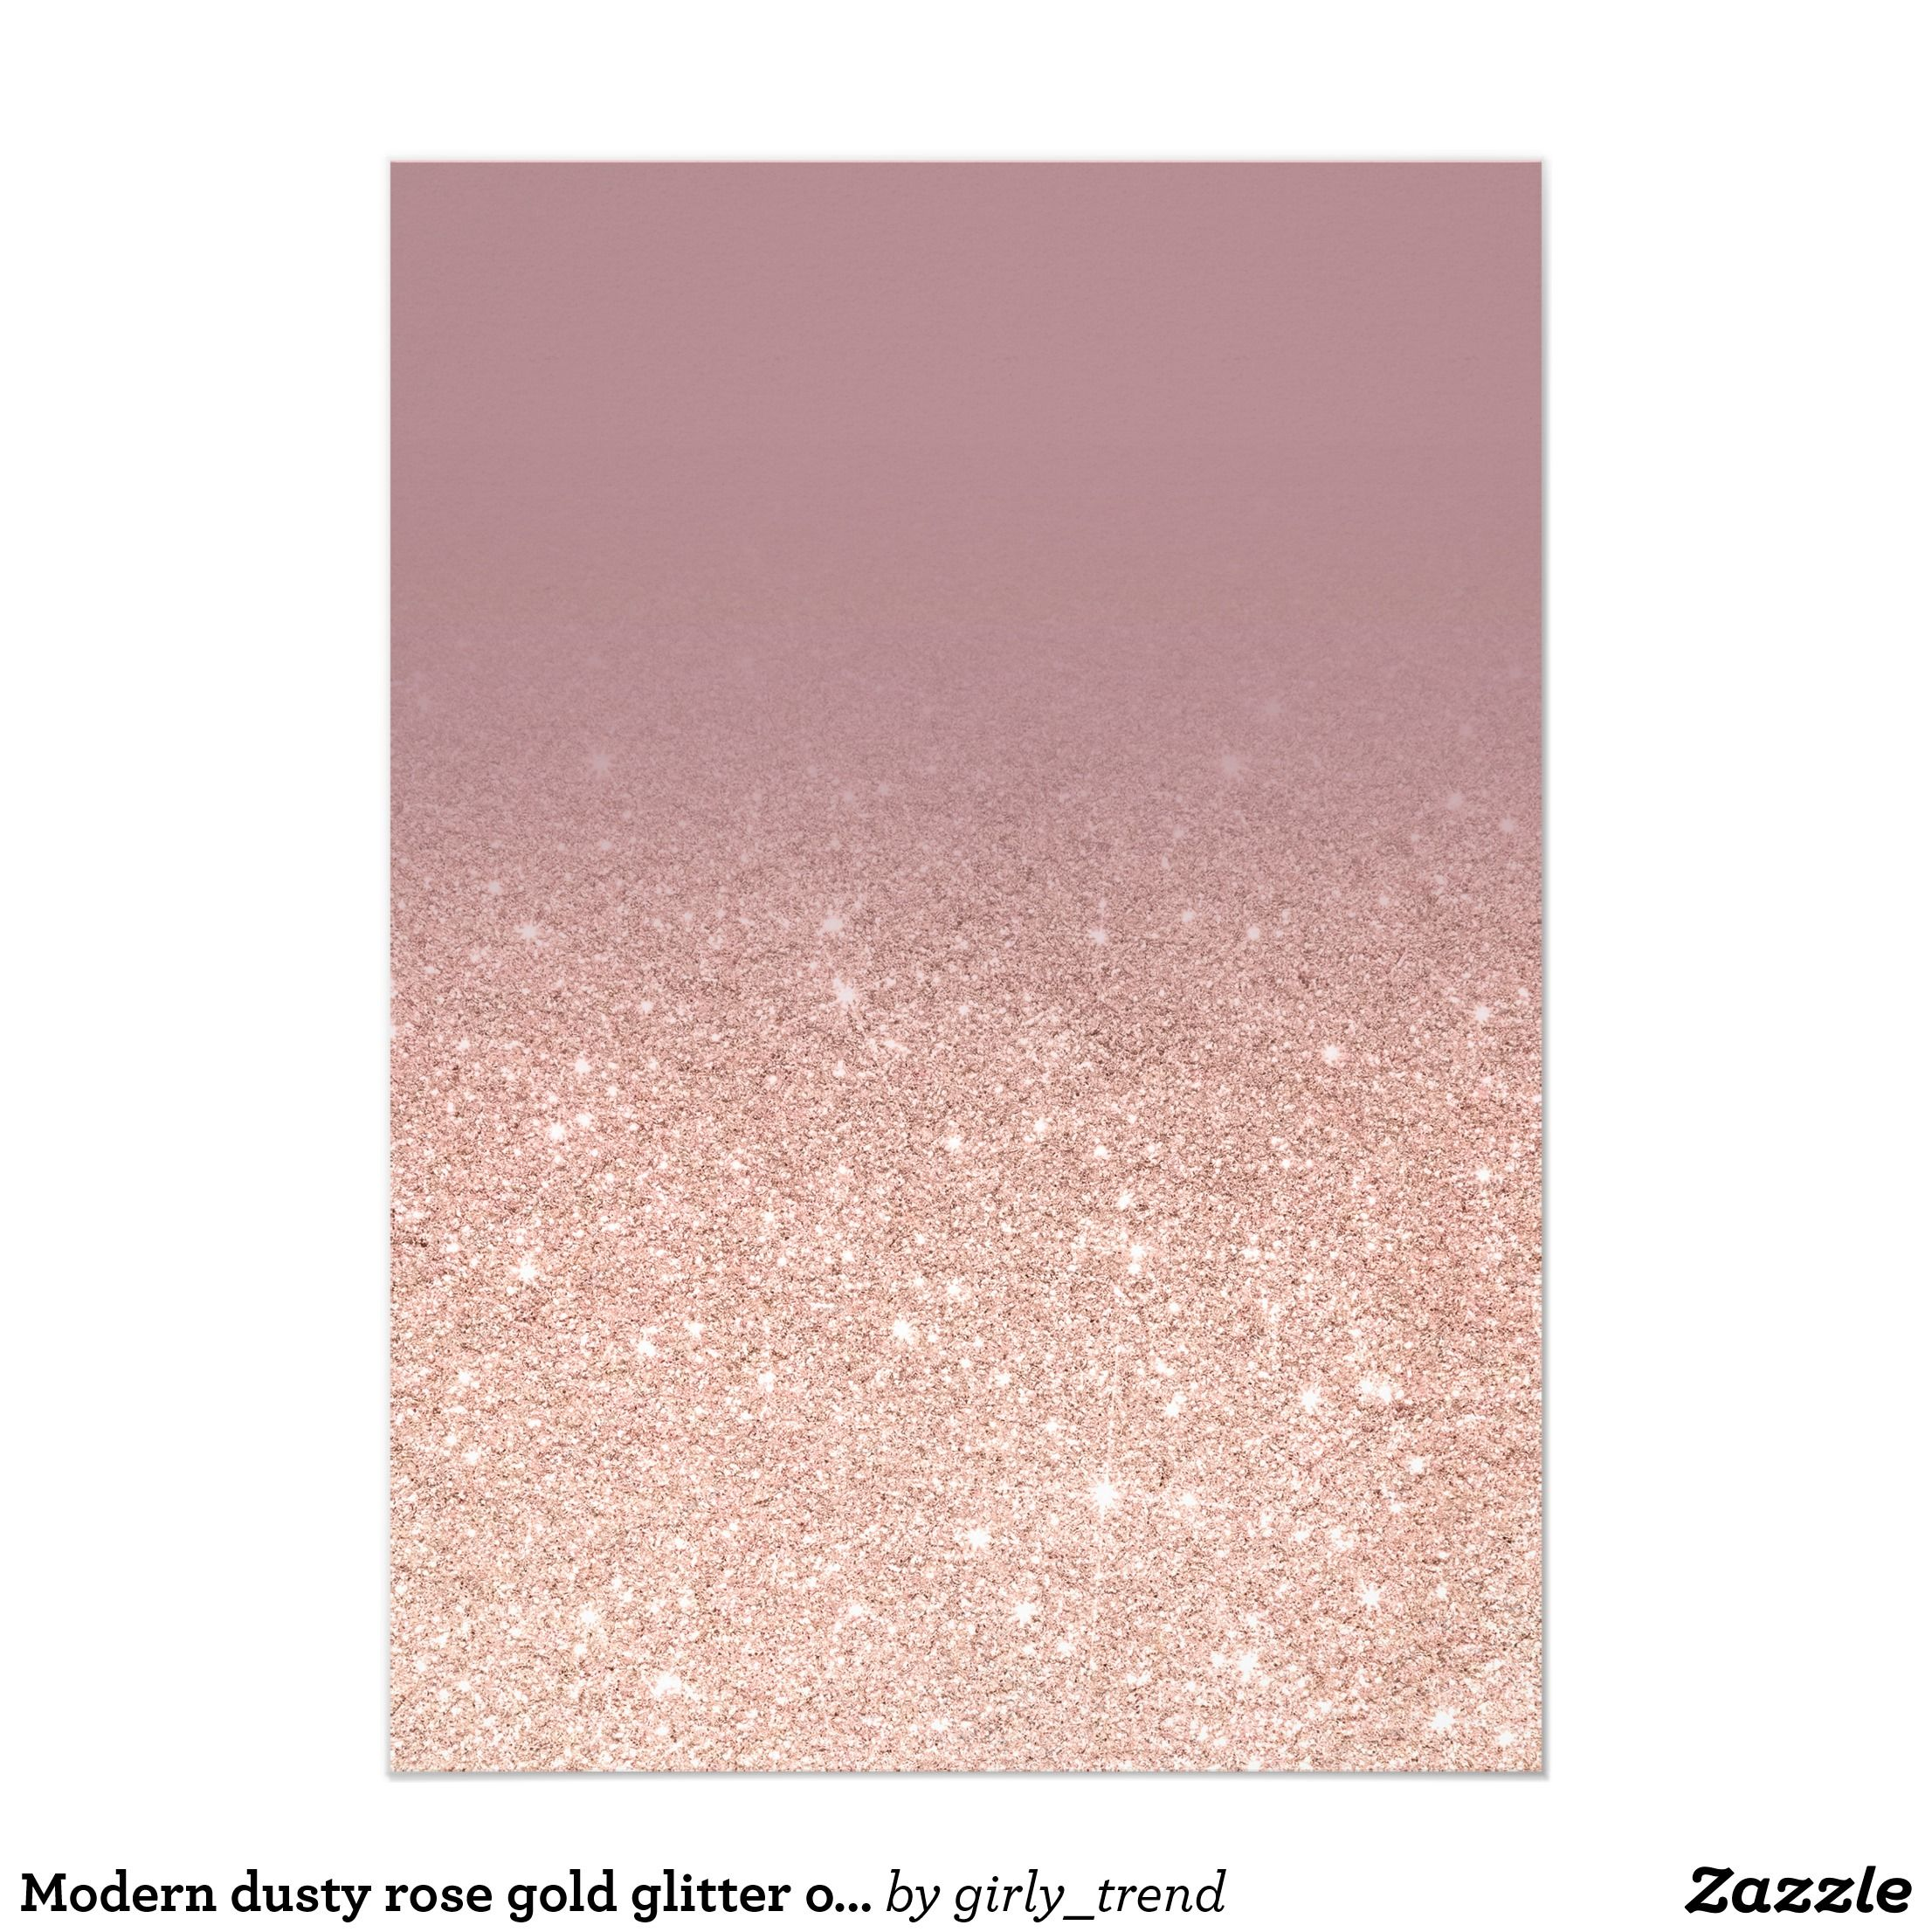 Modern Dusty Rose Gold Glitter Ombre Sweet 16 Invitation Zazzle Com Rose Gold Backgrounds Rose Gold Color Palette Pink And Gold Background